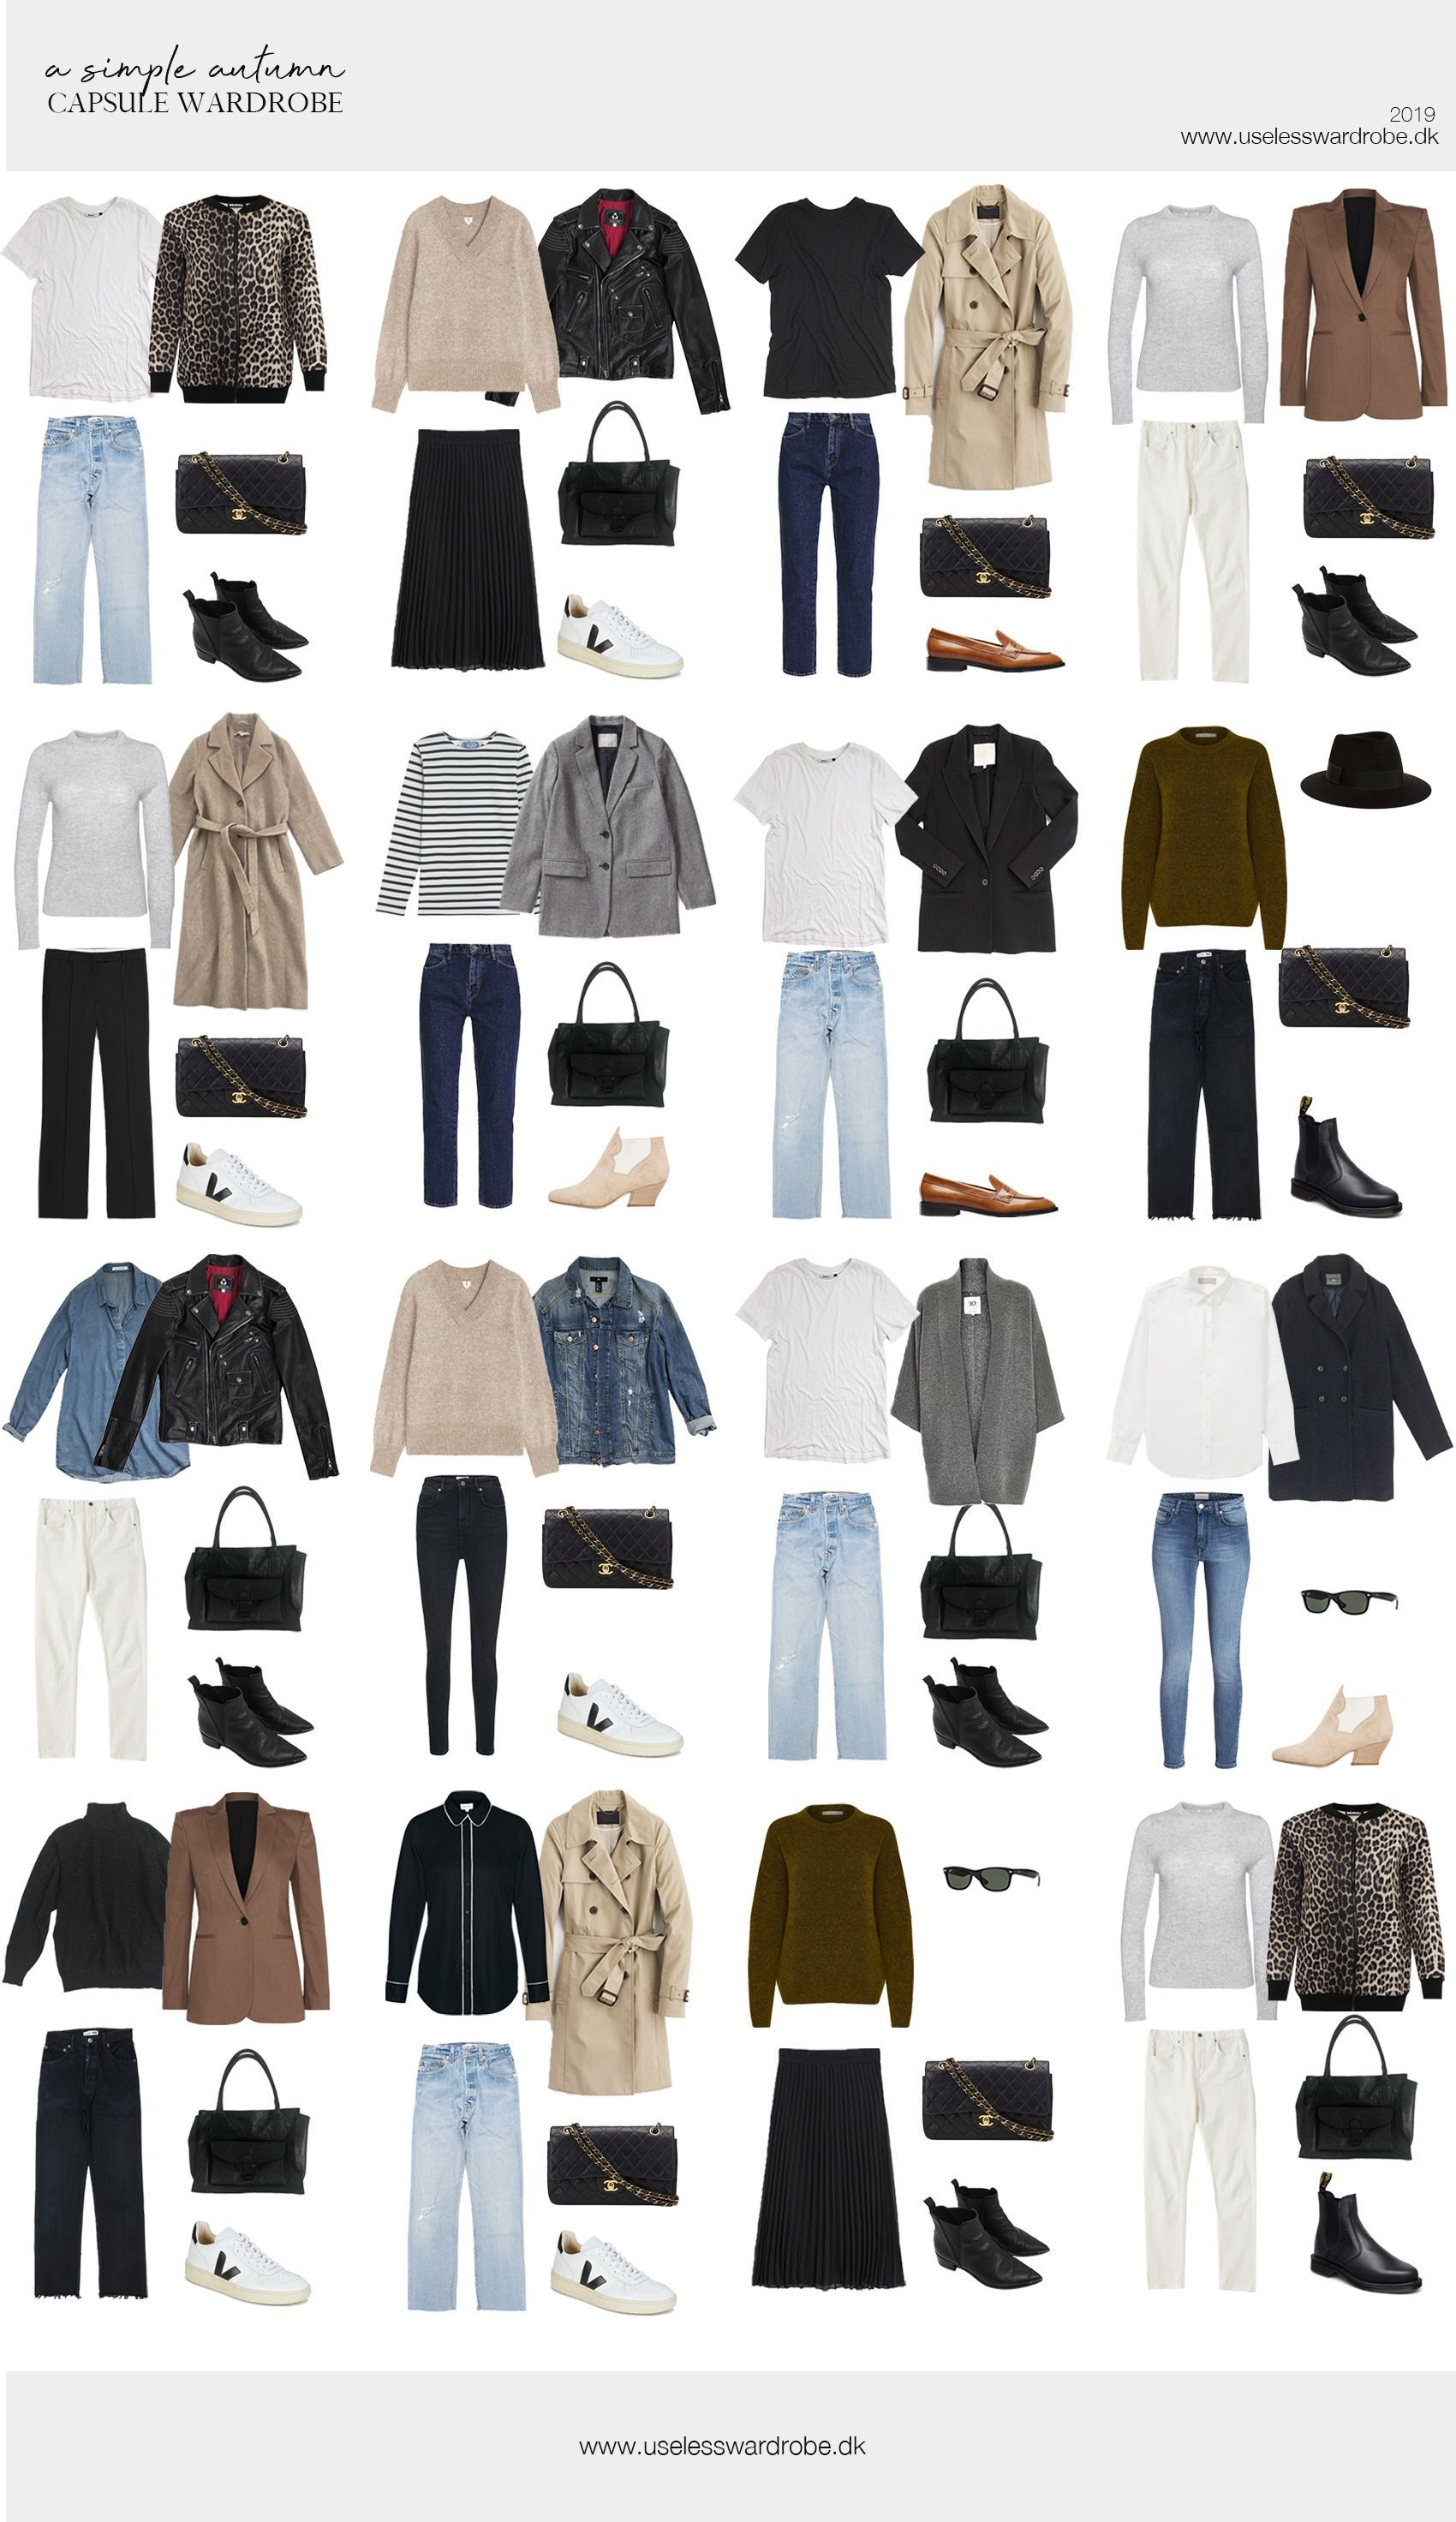 A simple autumn capsule wardrobe